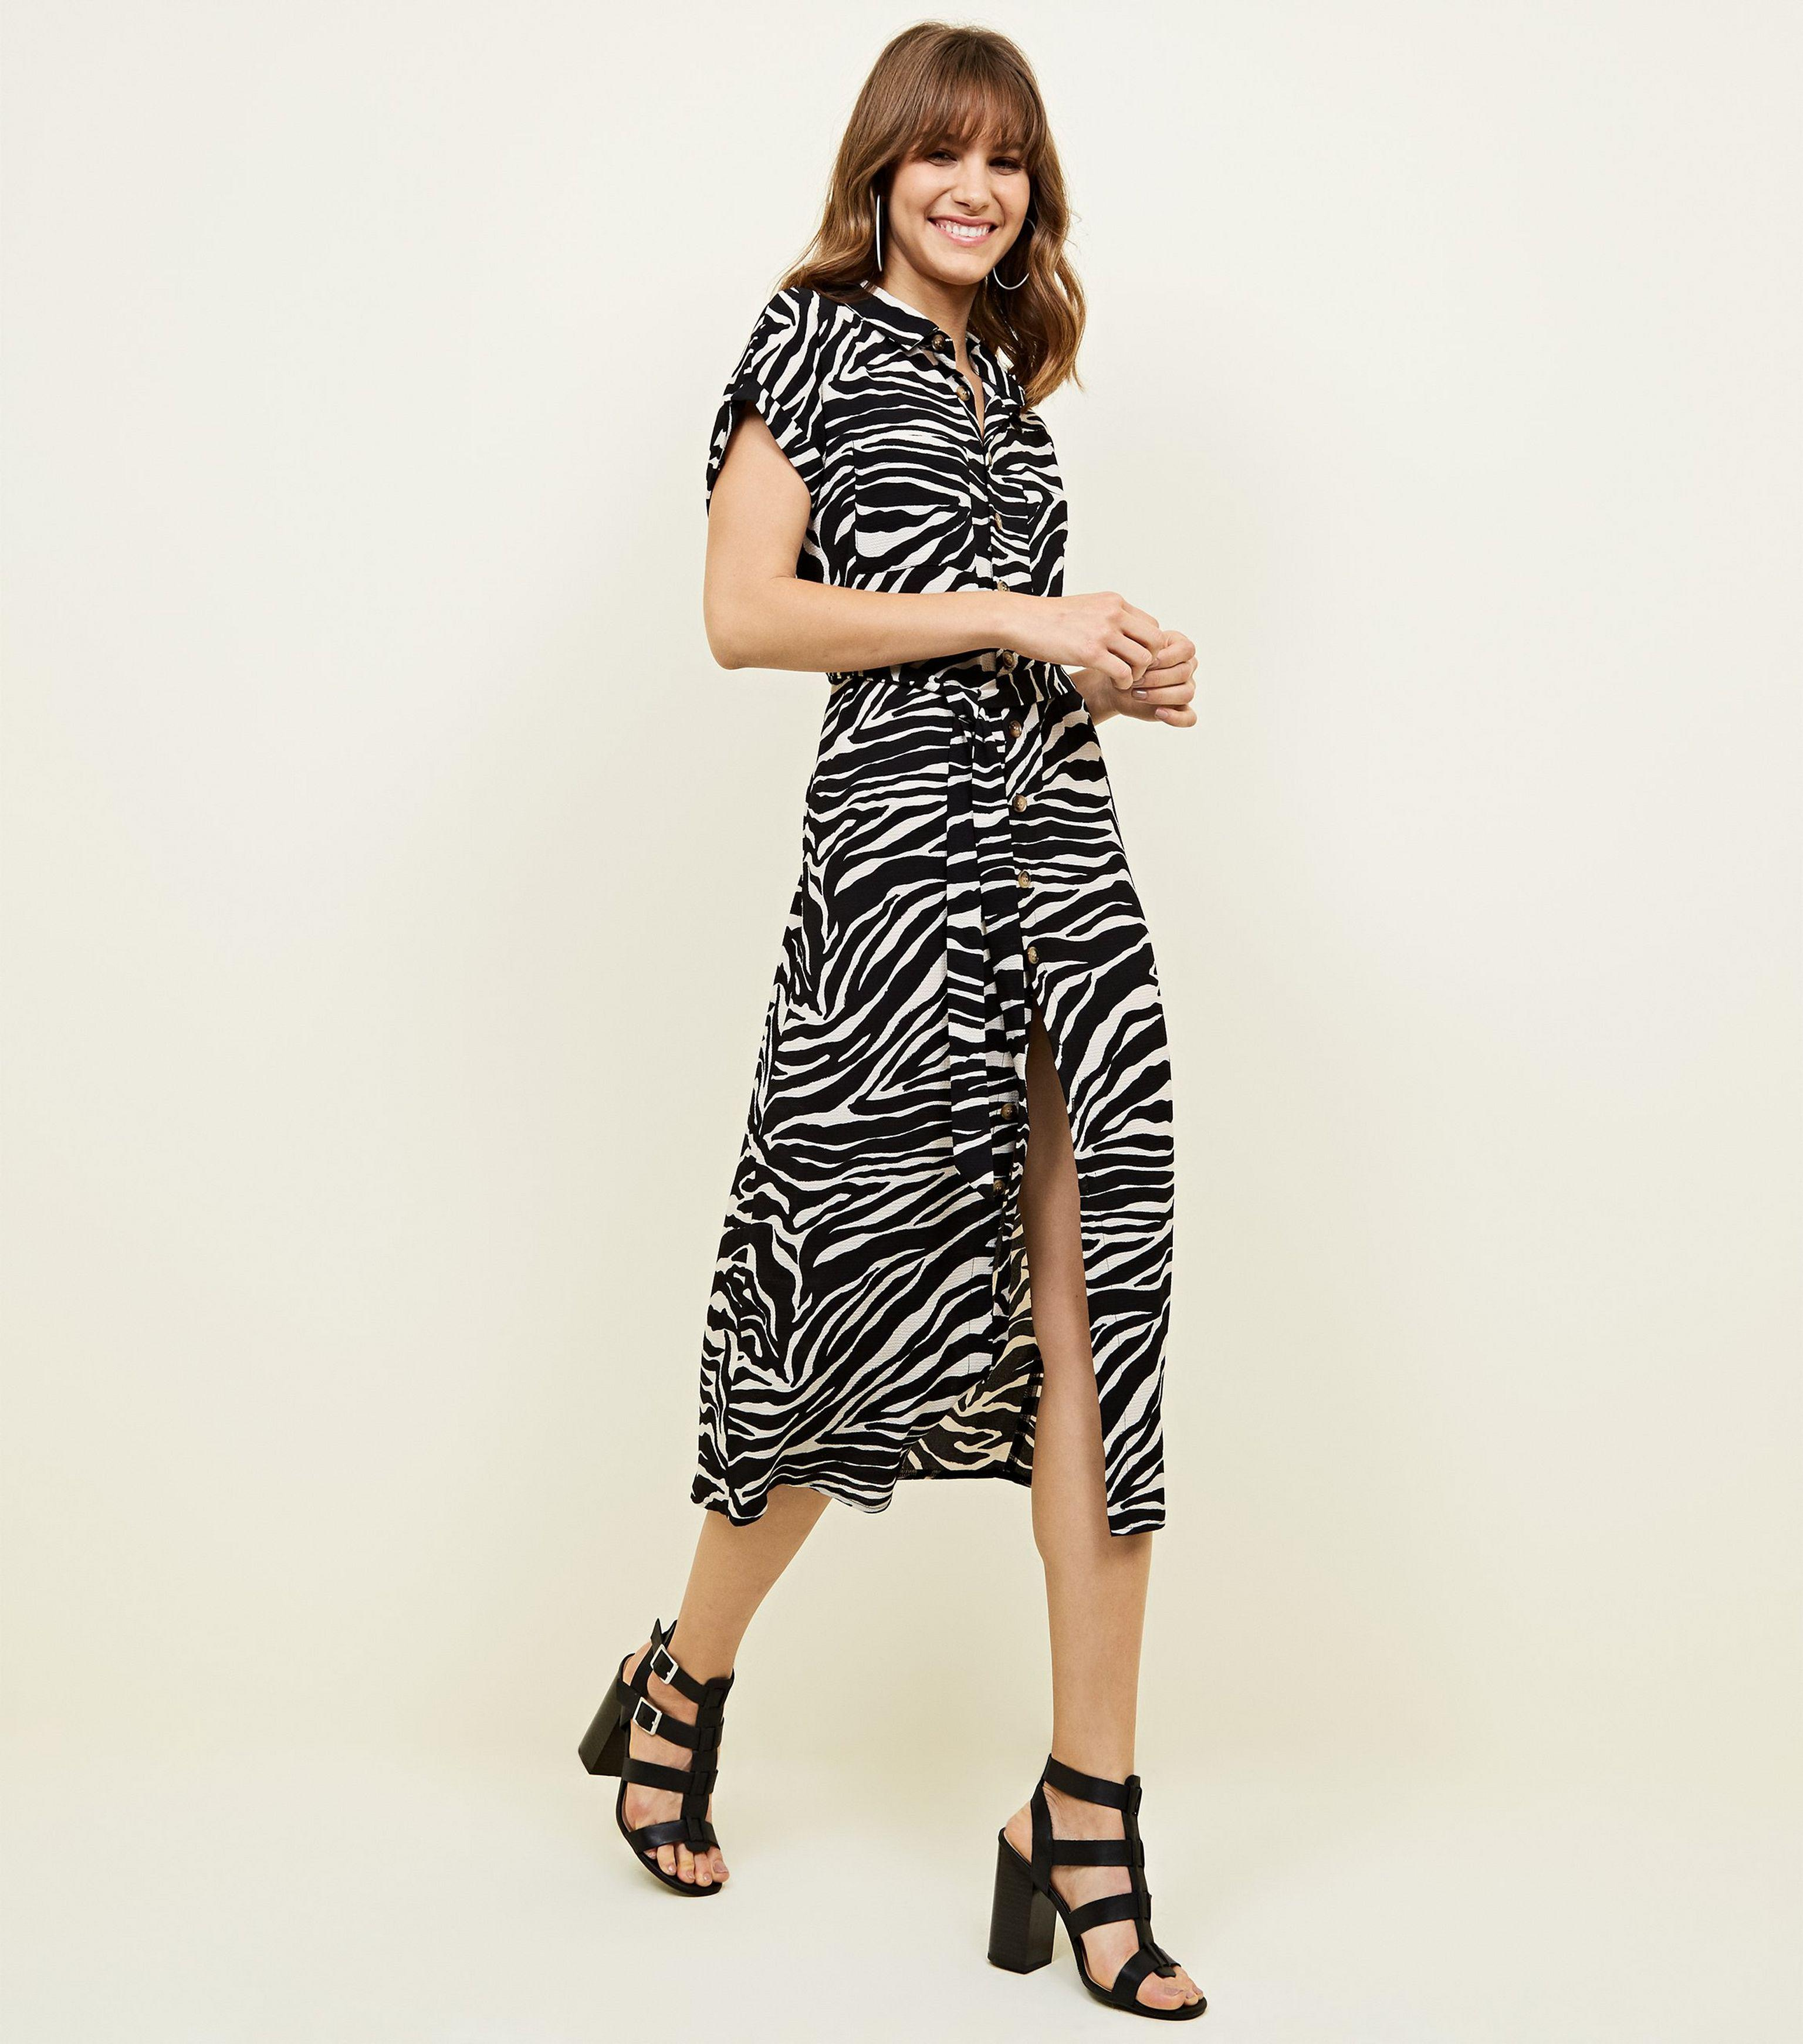 192527c260 New Look Black Zebra Print Midi Shirt Dress in Black - Lyst